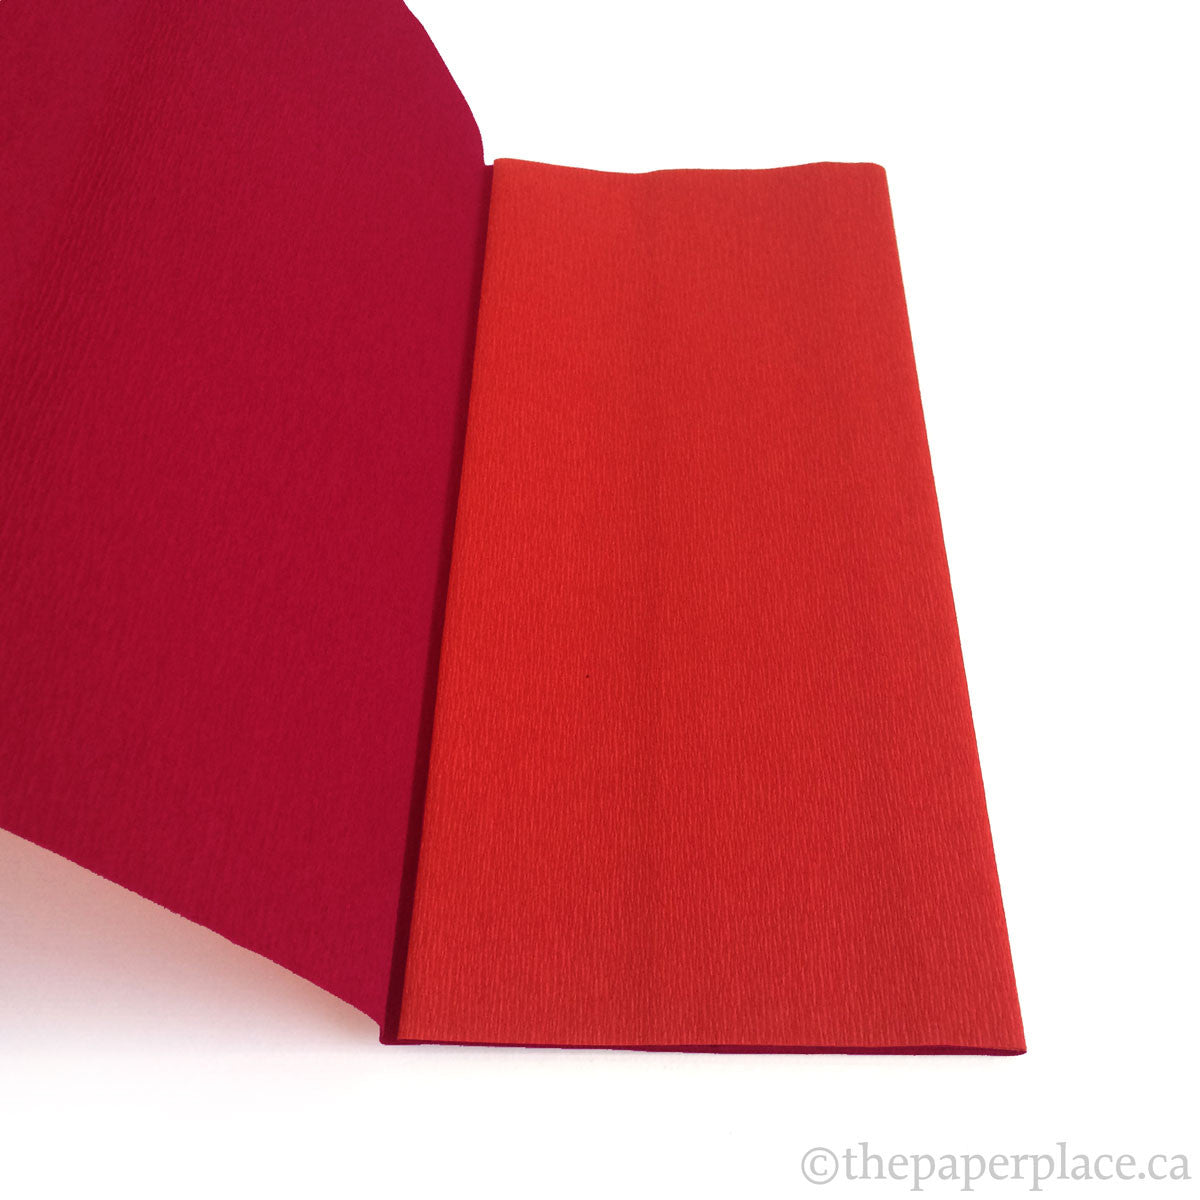 90g Double-Sided Crepe - Red/Wine